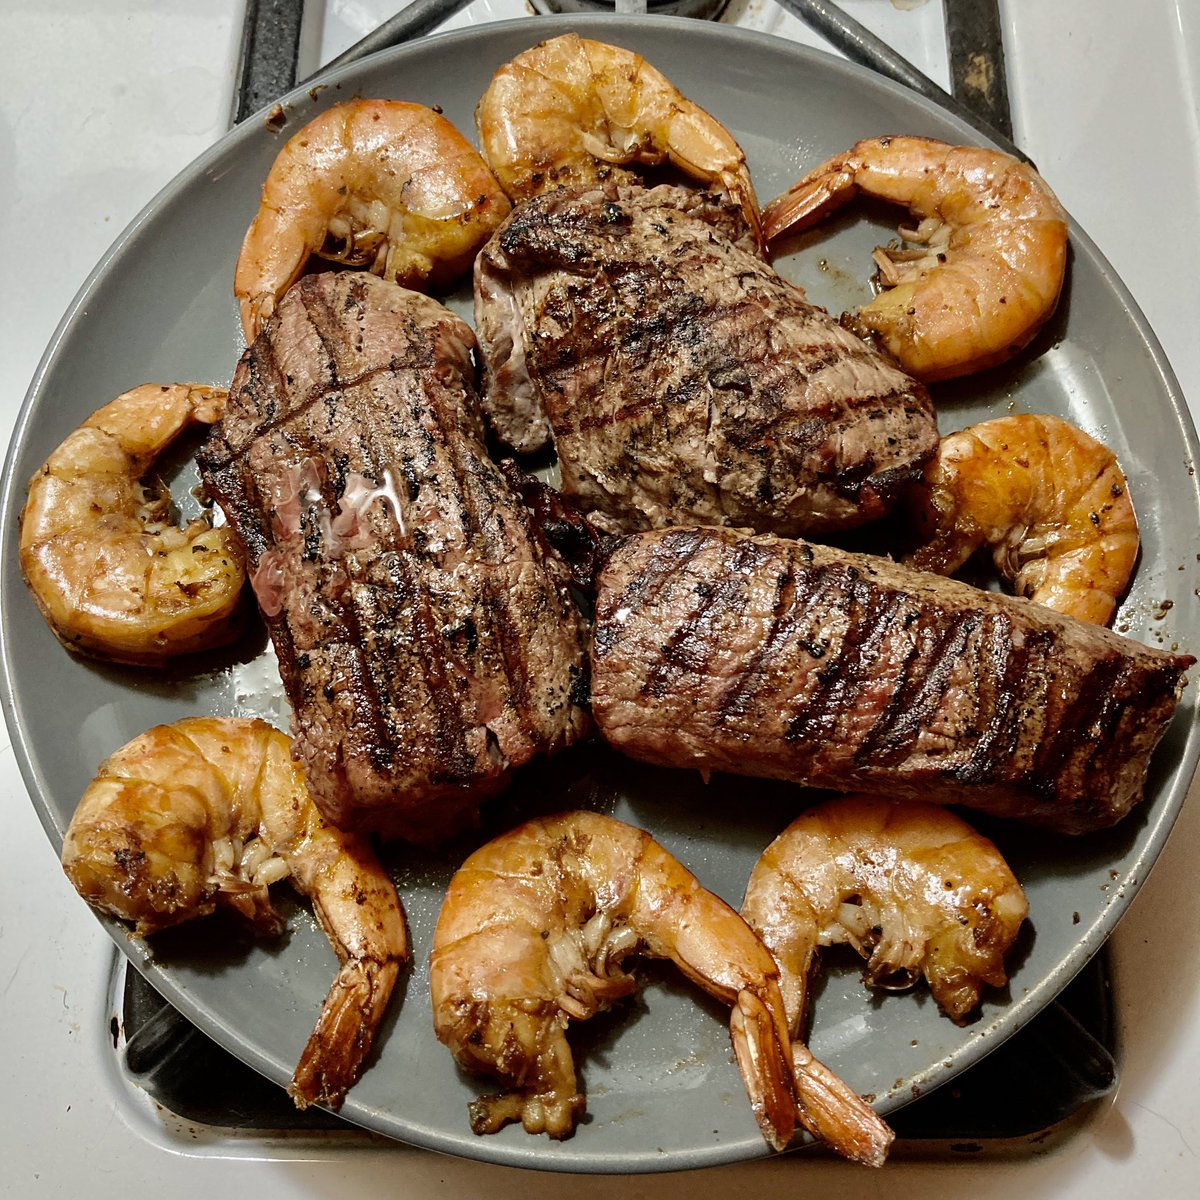 A little Wednesday night Surf and Turf on the old Weber Kettle. Steak and shell on shrimp marinated in soya sauce, olive oil, garlic, S&P and ginger. Hump day just got a whole lot better! #Kingsford #BBQ #Webergrills https://t.co/iJZFs3mzW9